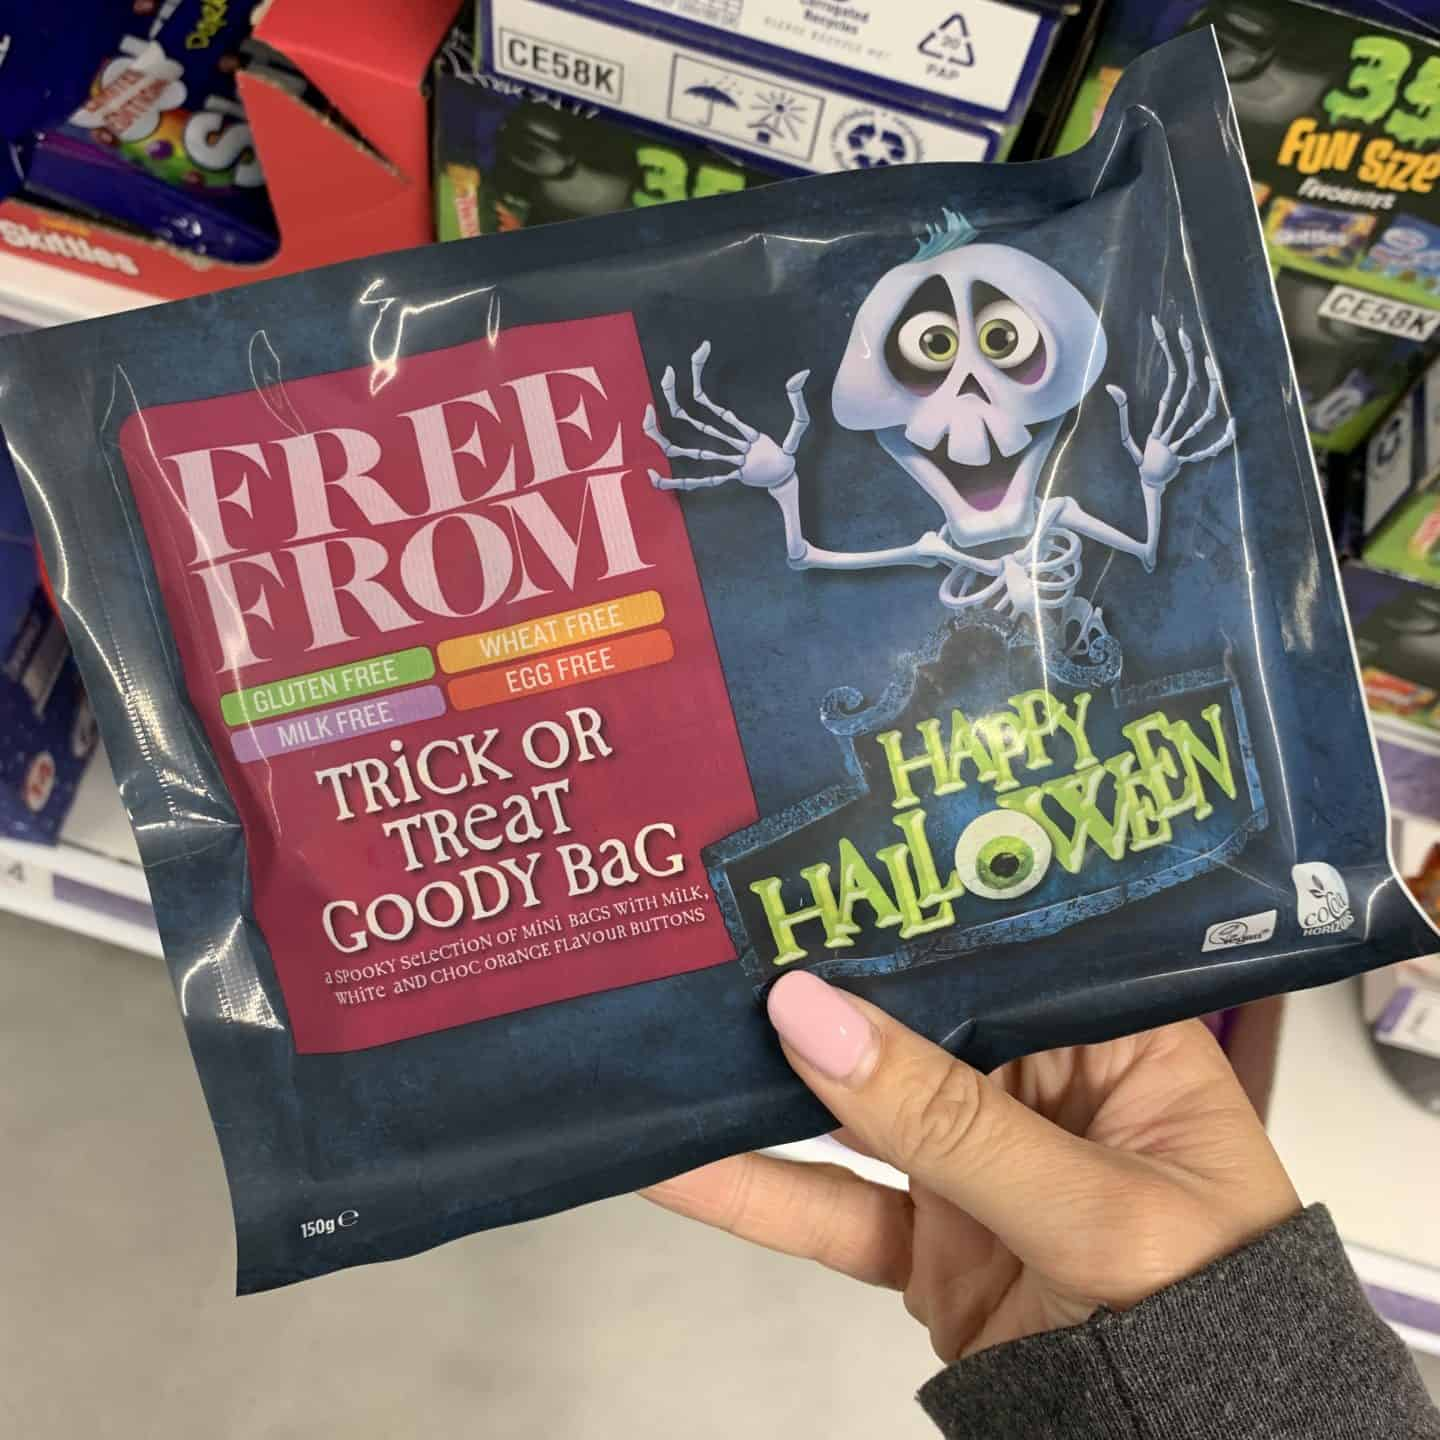 GLUTEN FREE FINDS OCTOBER 2019 UK SUPERMARKETS4